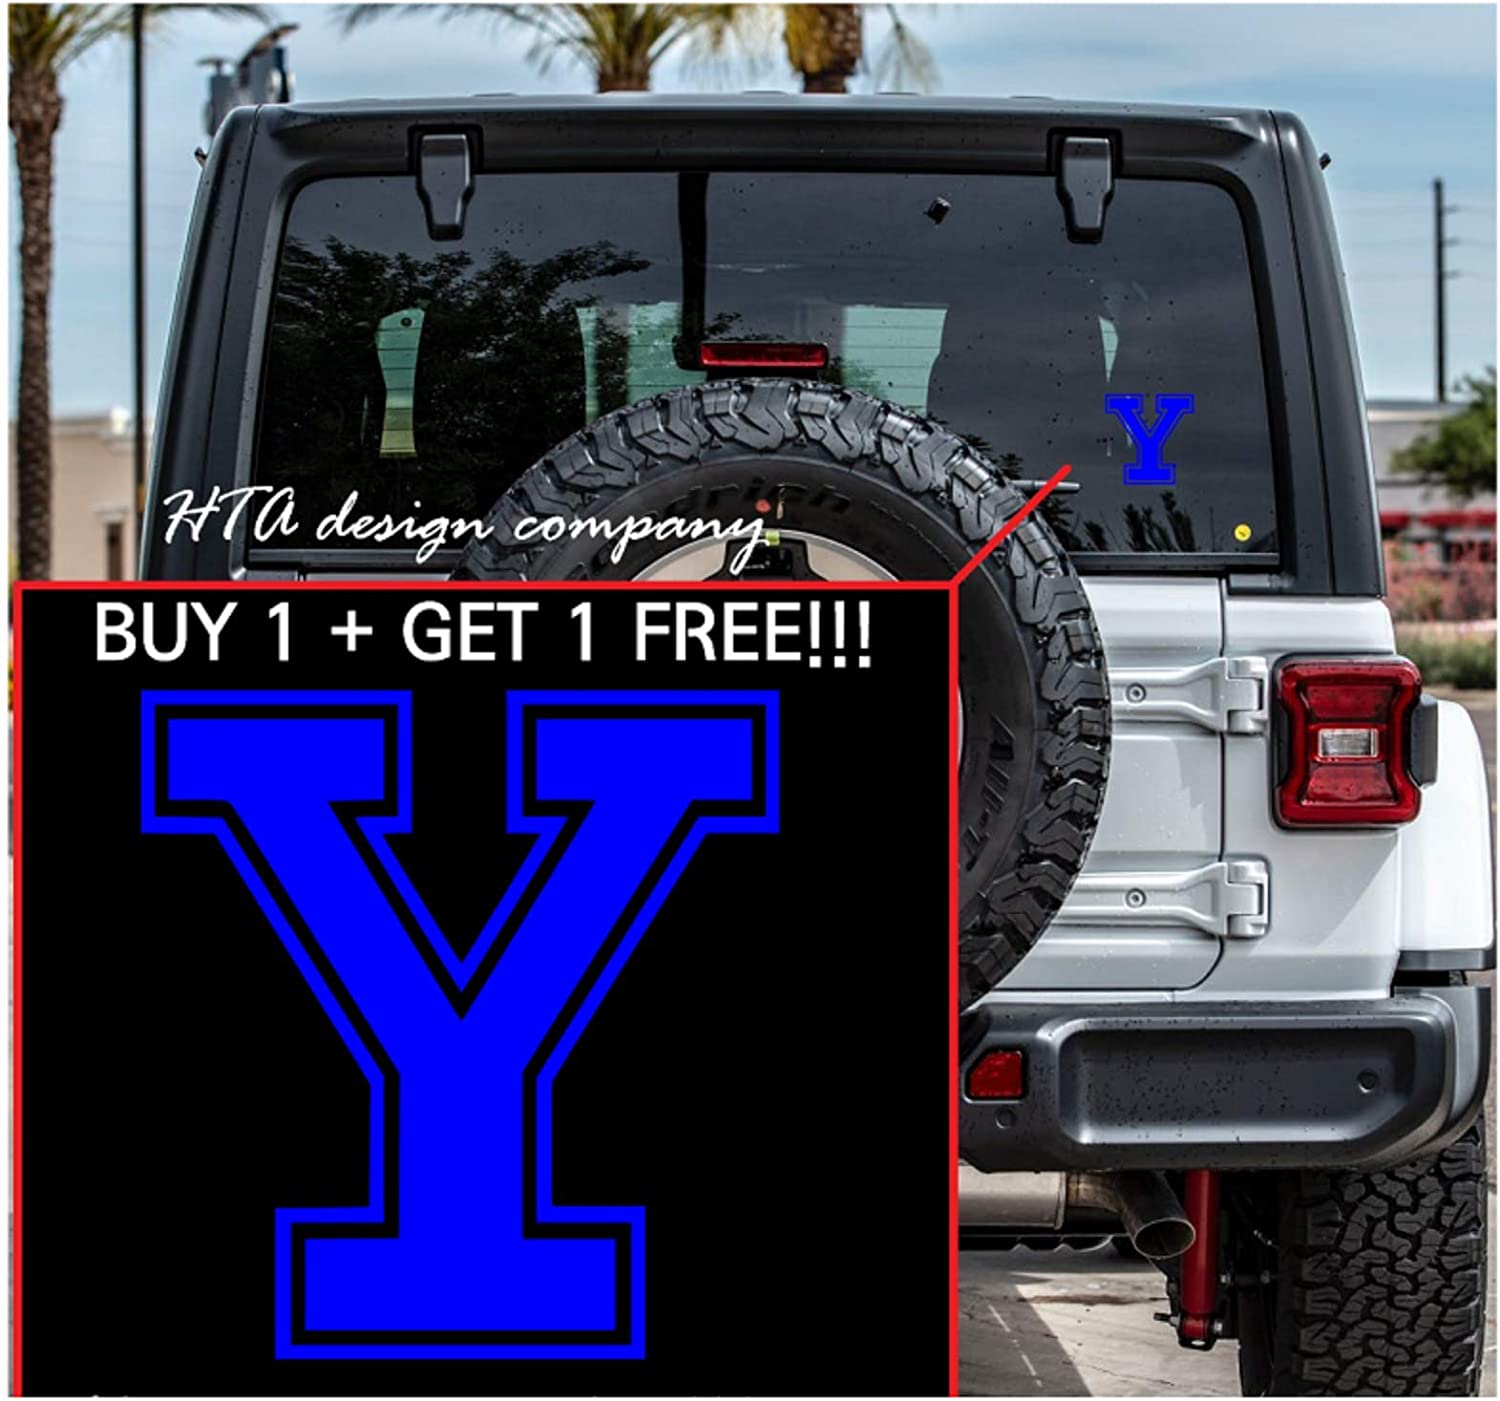 HTA Custom Decal for Yale univ. Symbol Die Cut Vinyl Sticker Decal for Car, Truck, Jeep, Window, Motorcycle, Bumper Decal for Laptop, Phone, Home Decoration / 4 in x 4 in/Bule